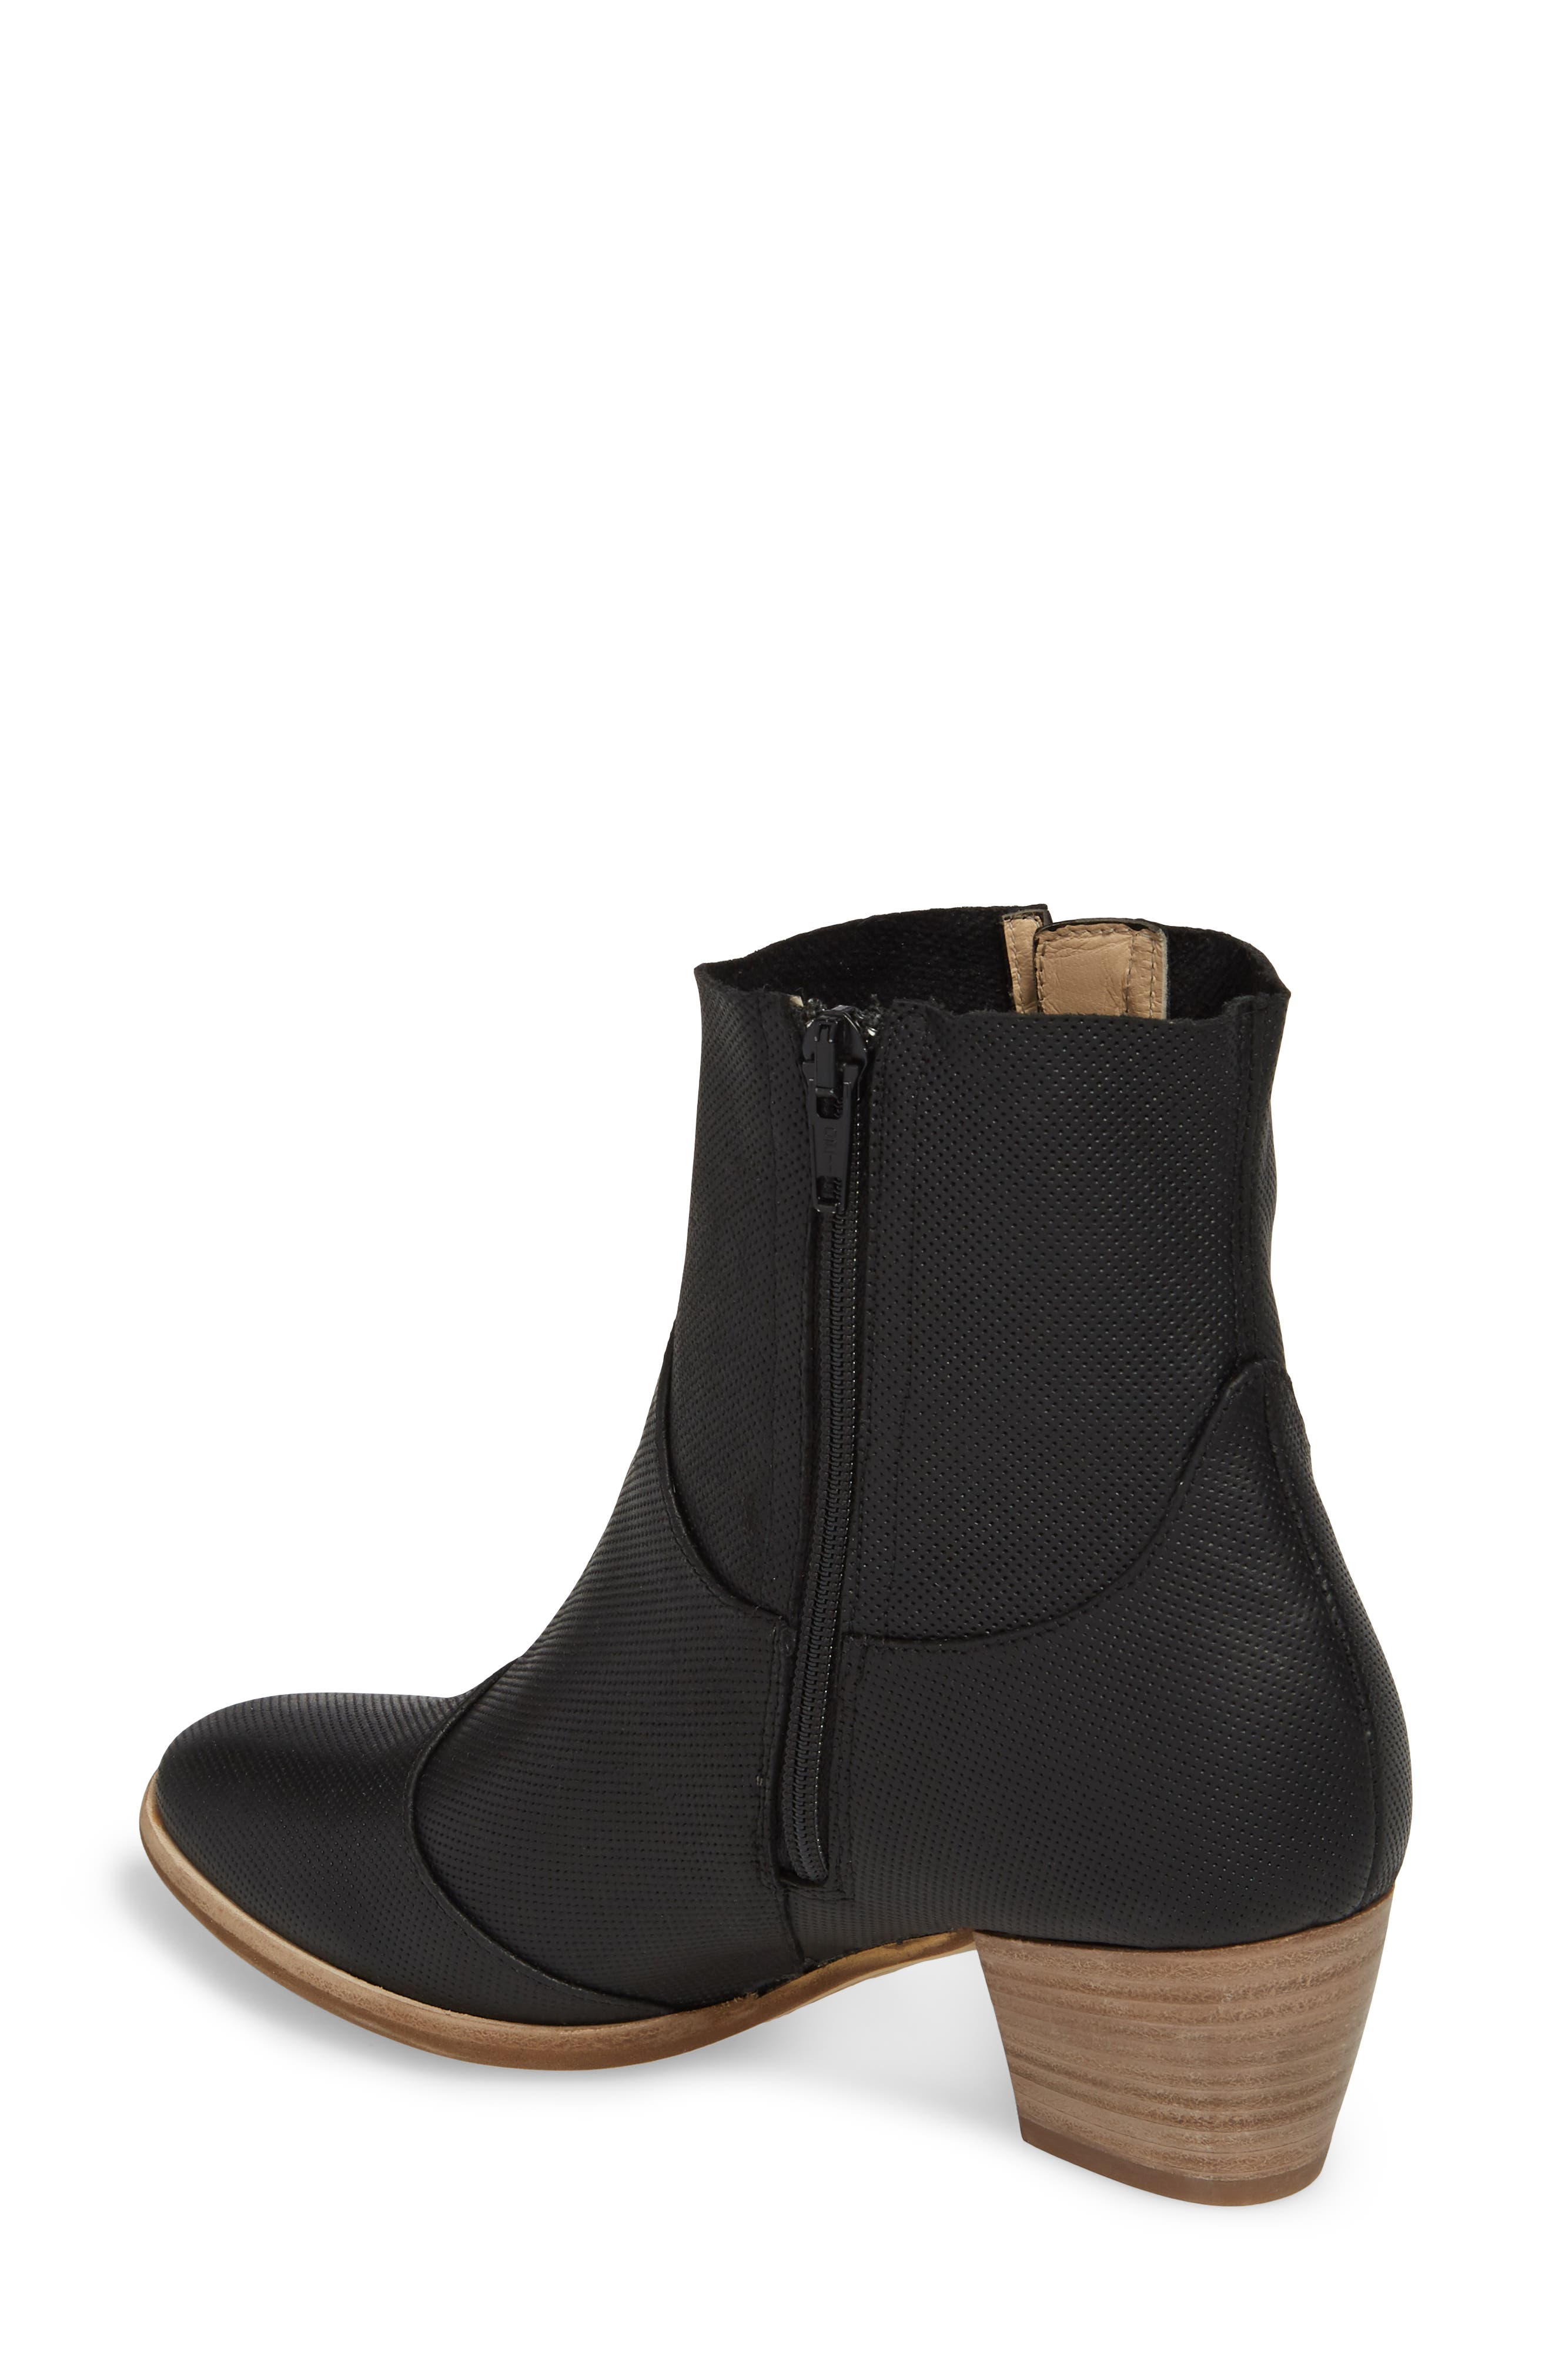 Robin Bootie,                             Alternate thumbnail 2, color,                             BLACK LEATHER